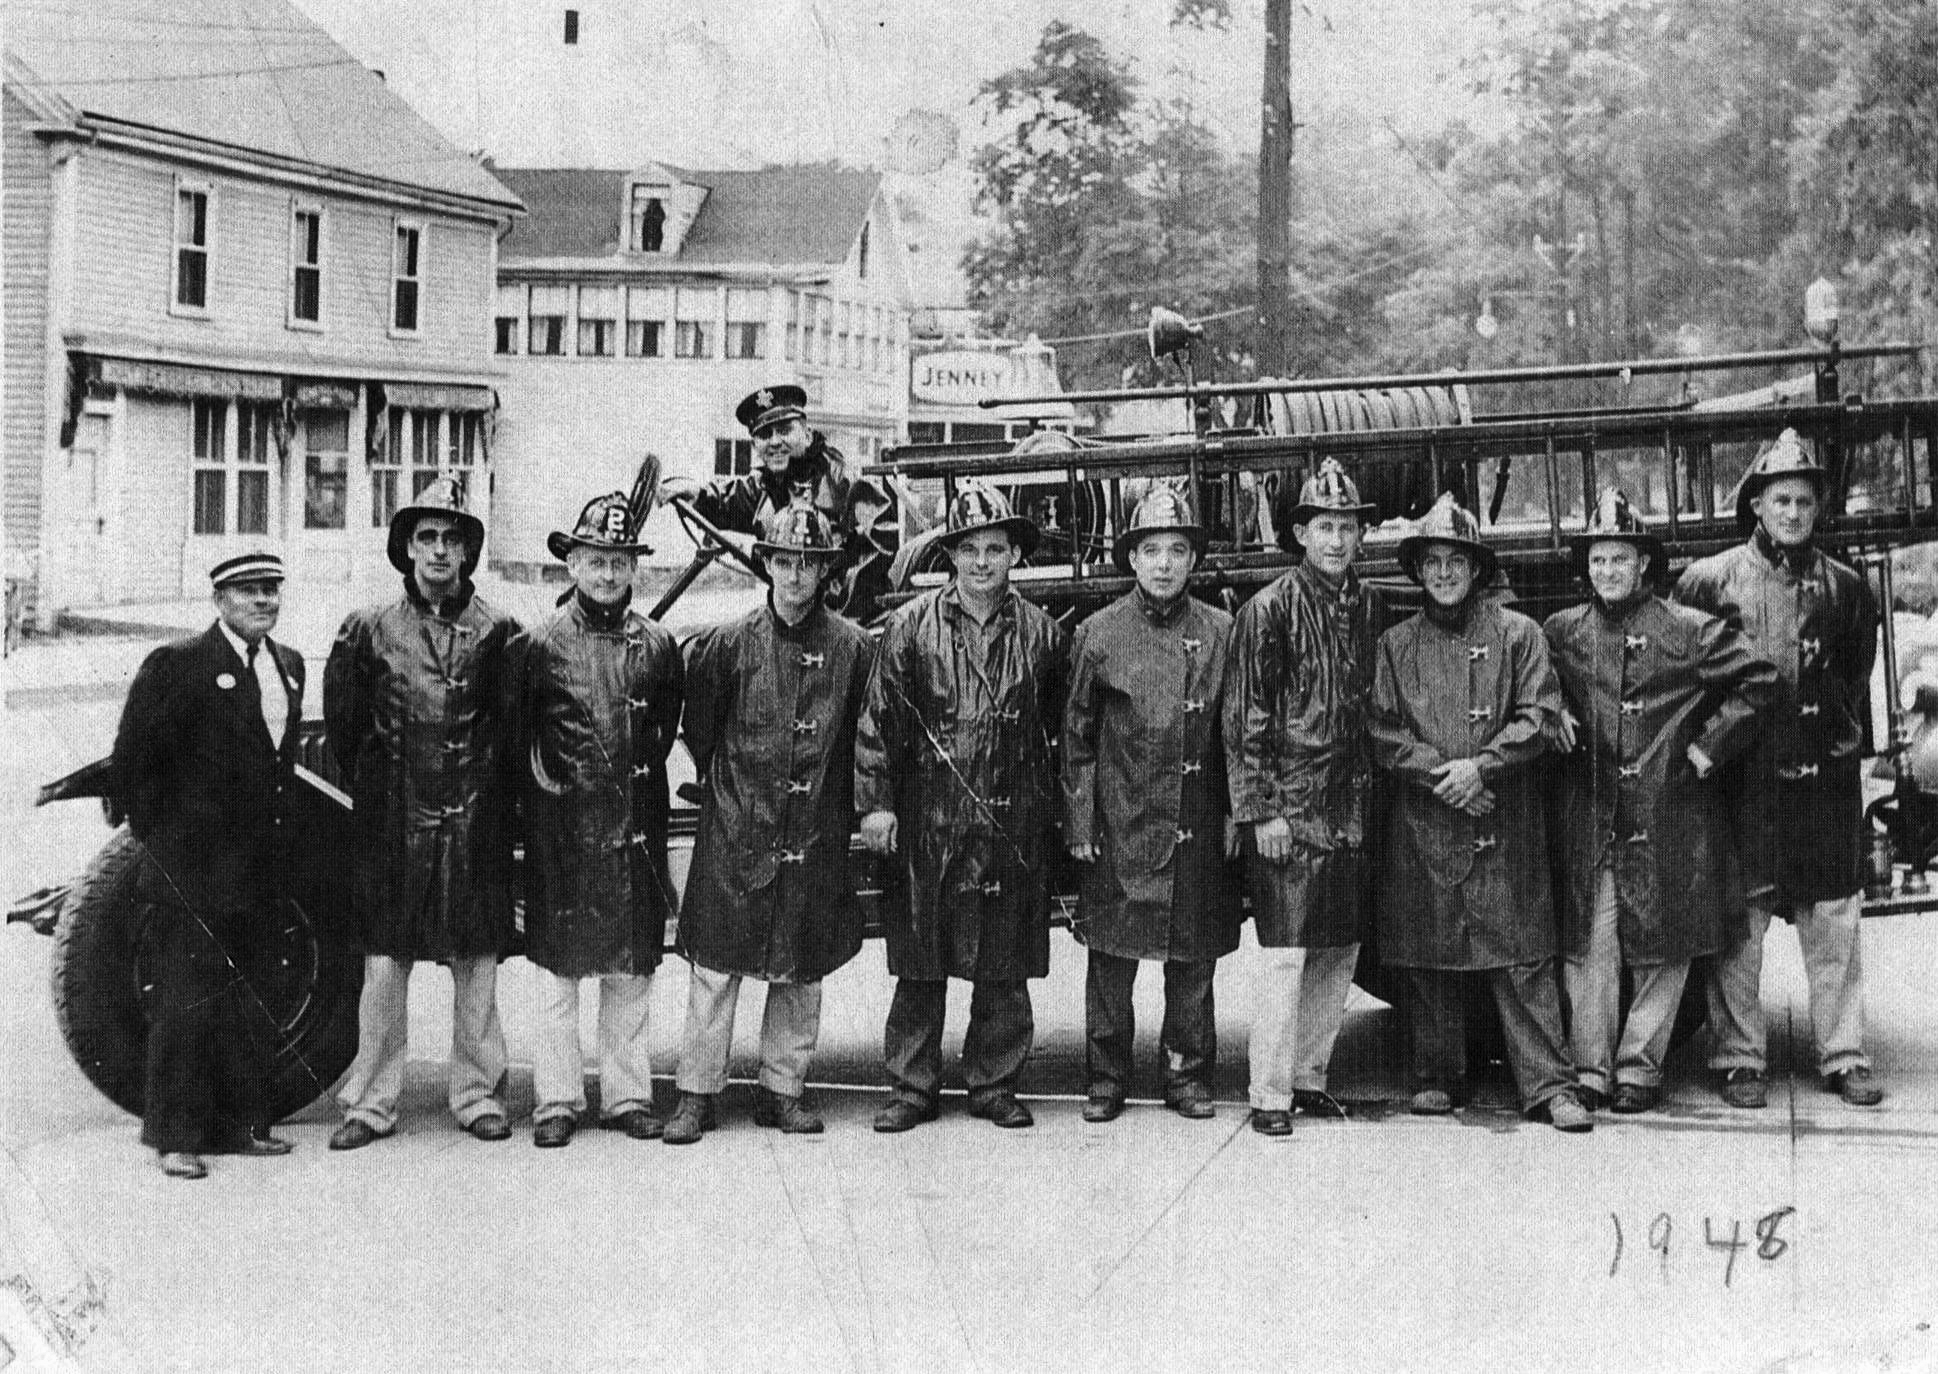 central_st_firemen_1948_Ipswich_museum